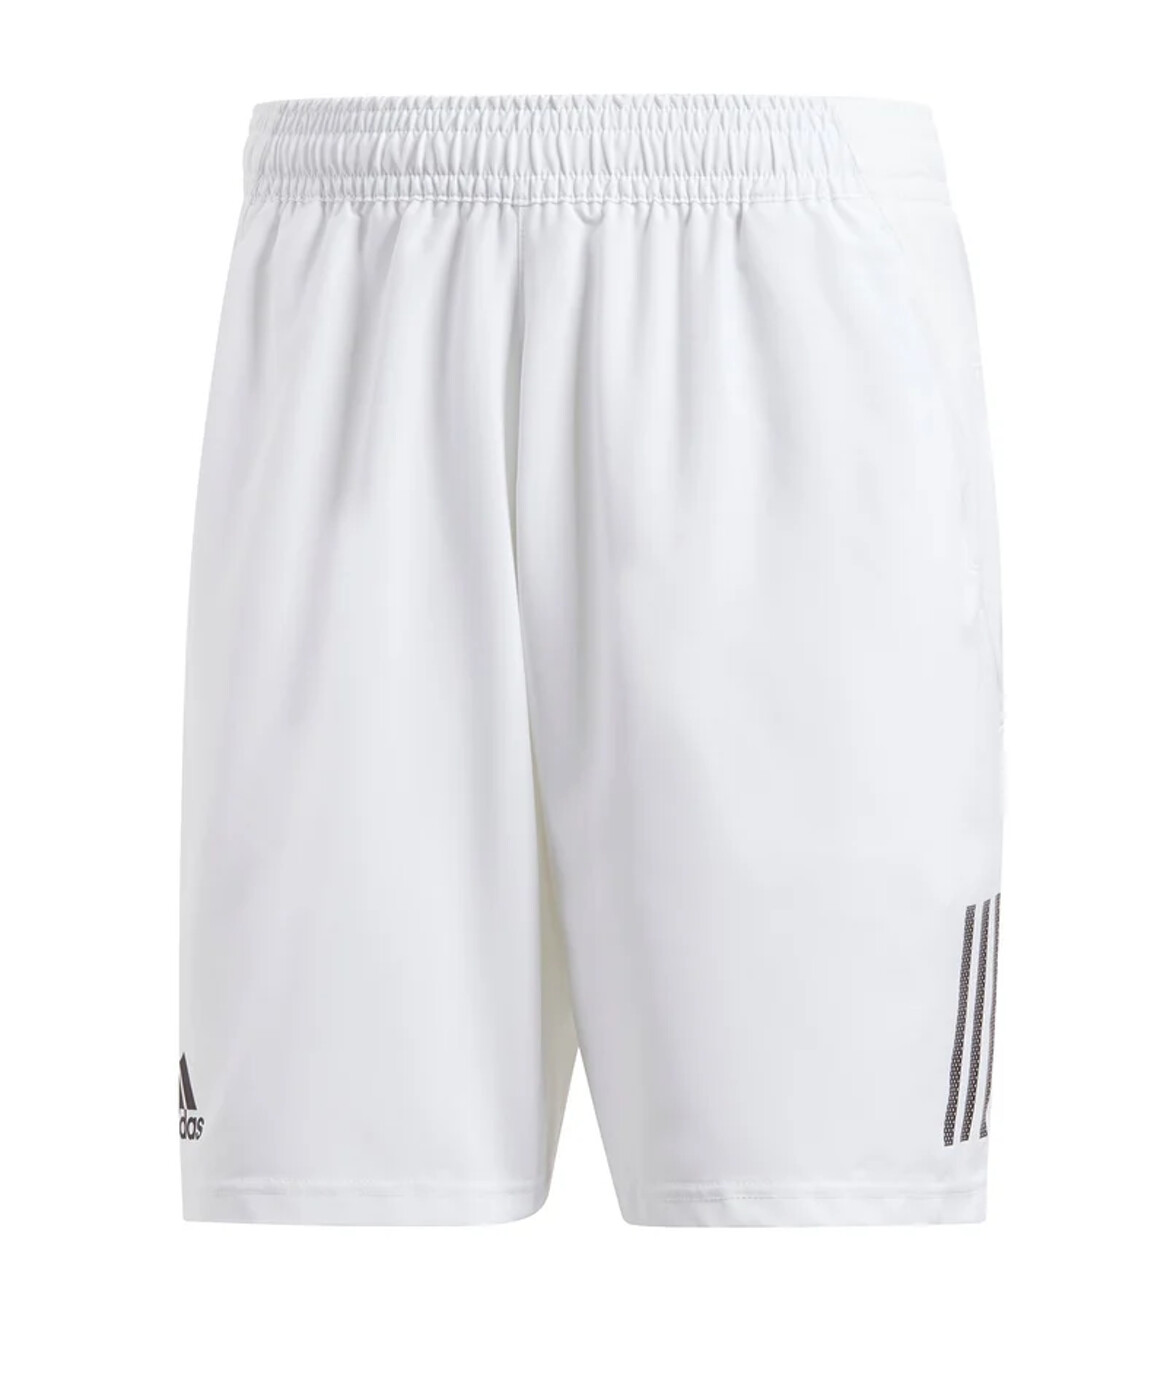 ADIDAS CLUB 3STR SHORT - Herren